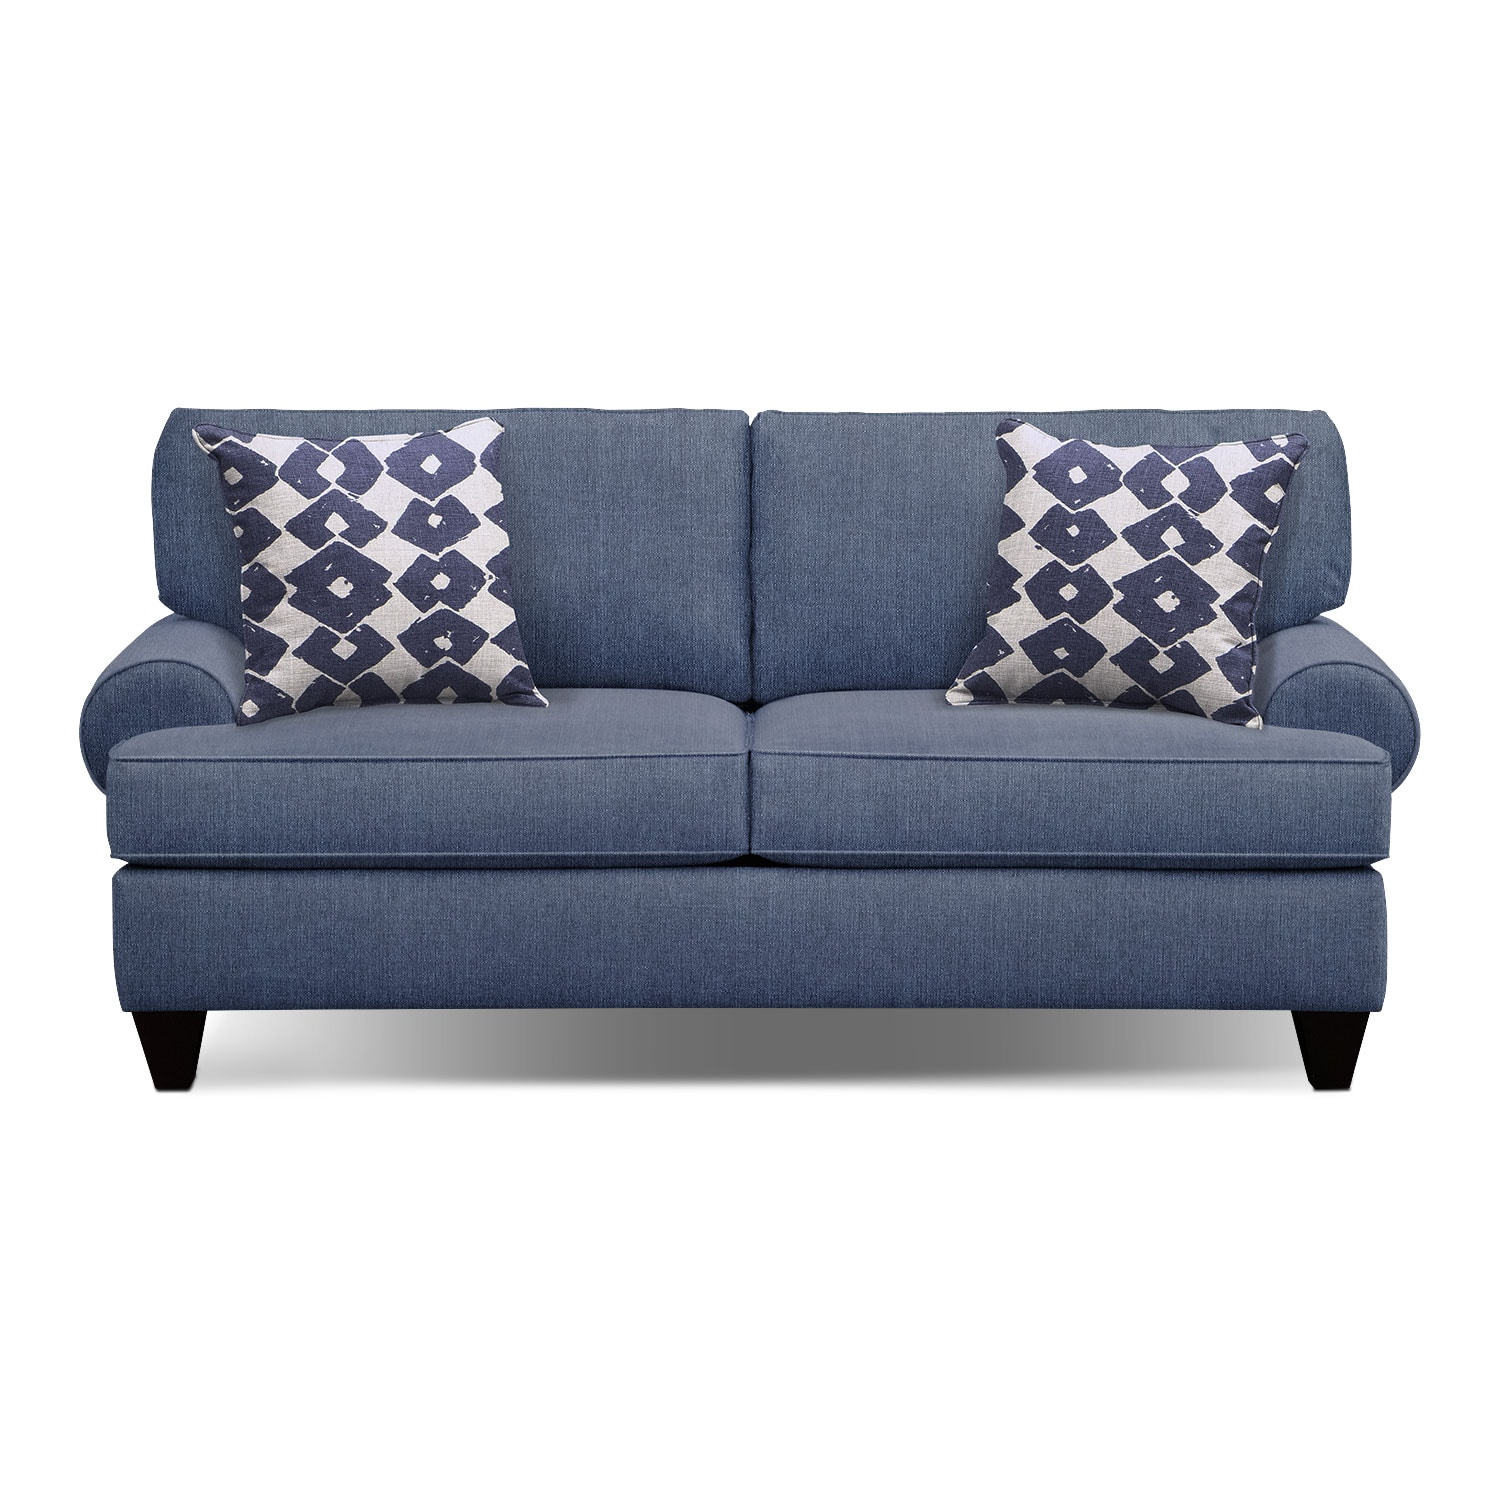 "Bailey Blue 79"" Memory Foam Sleeper Sofa"